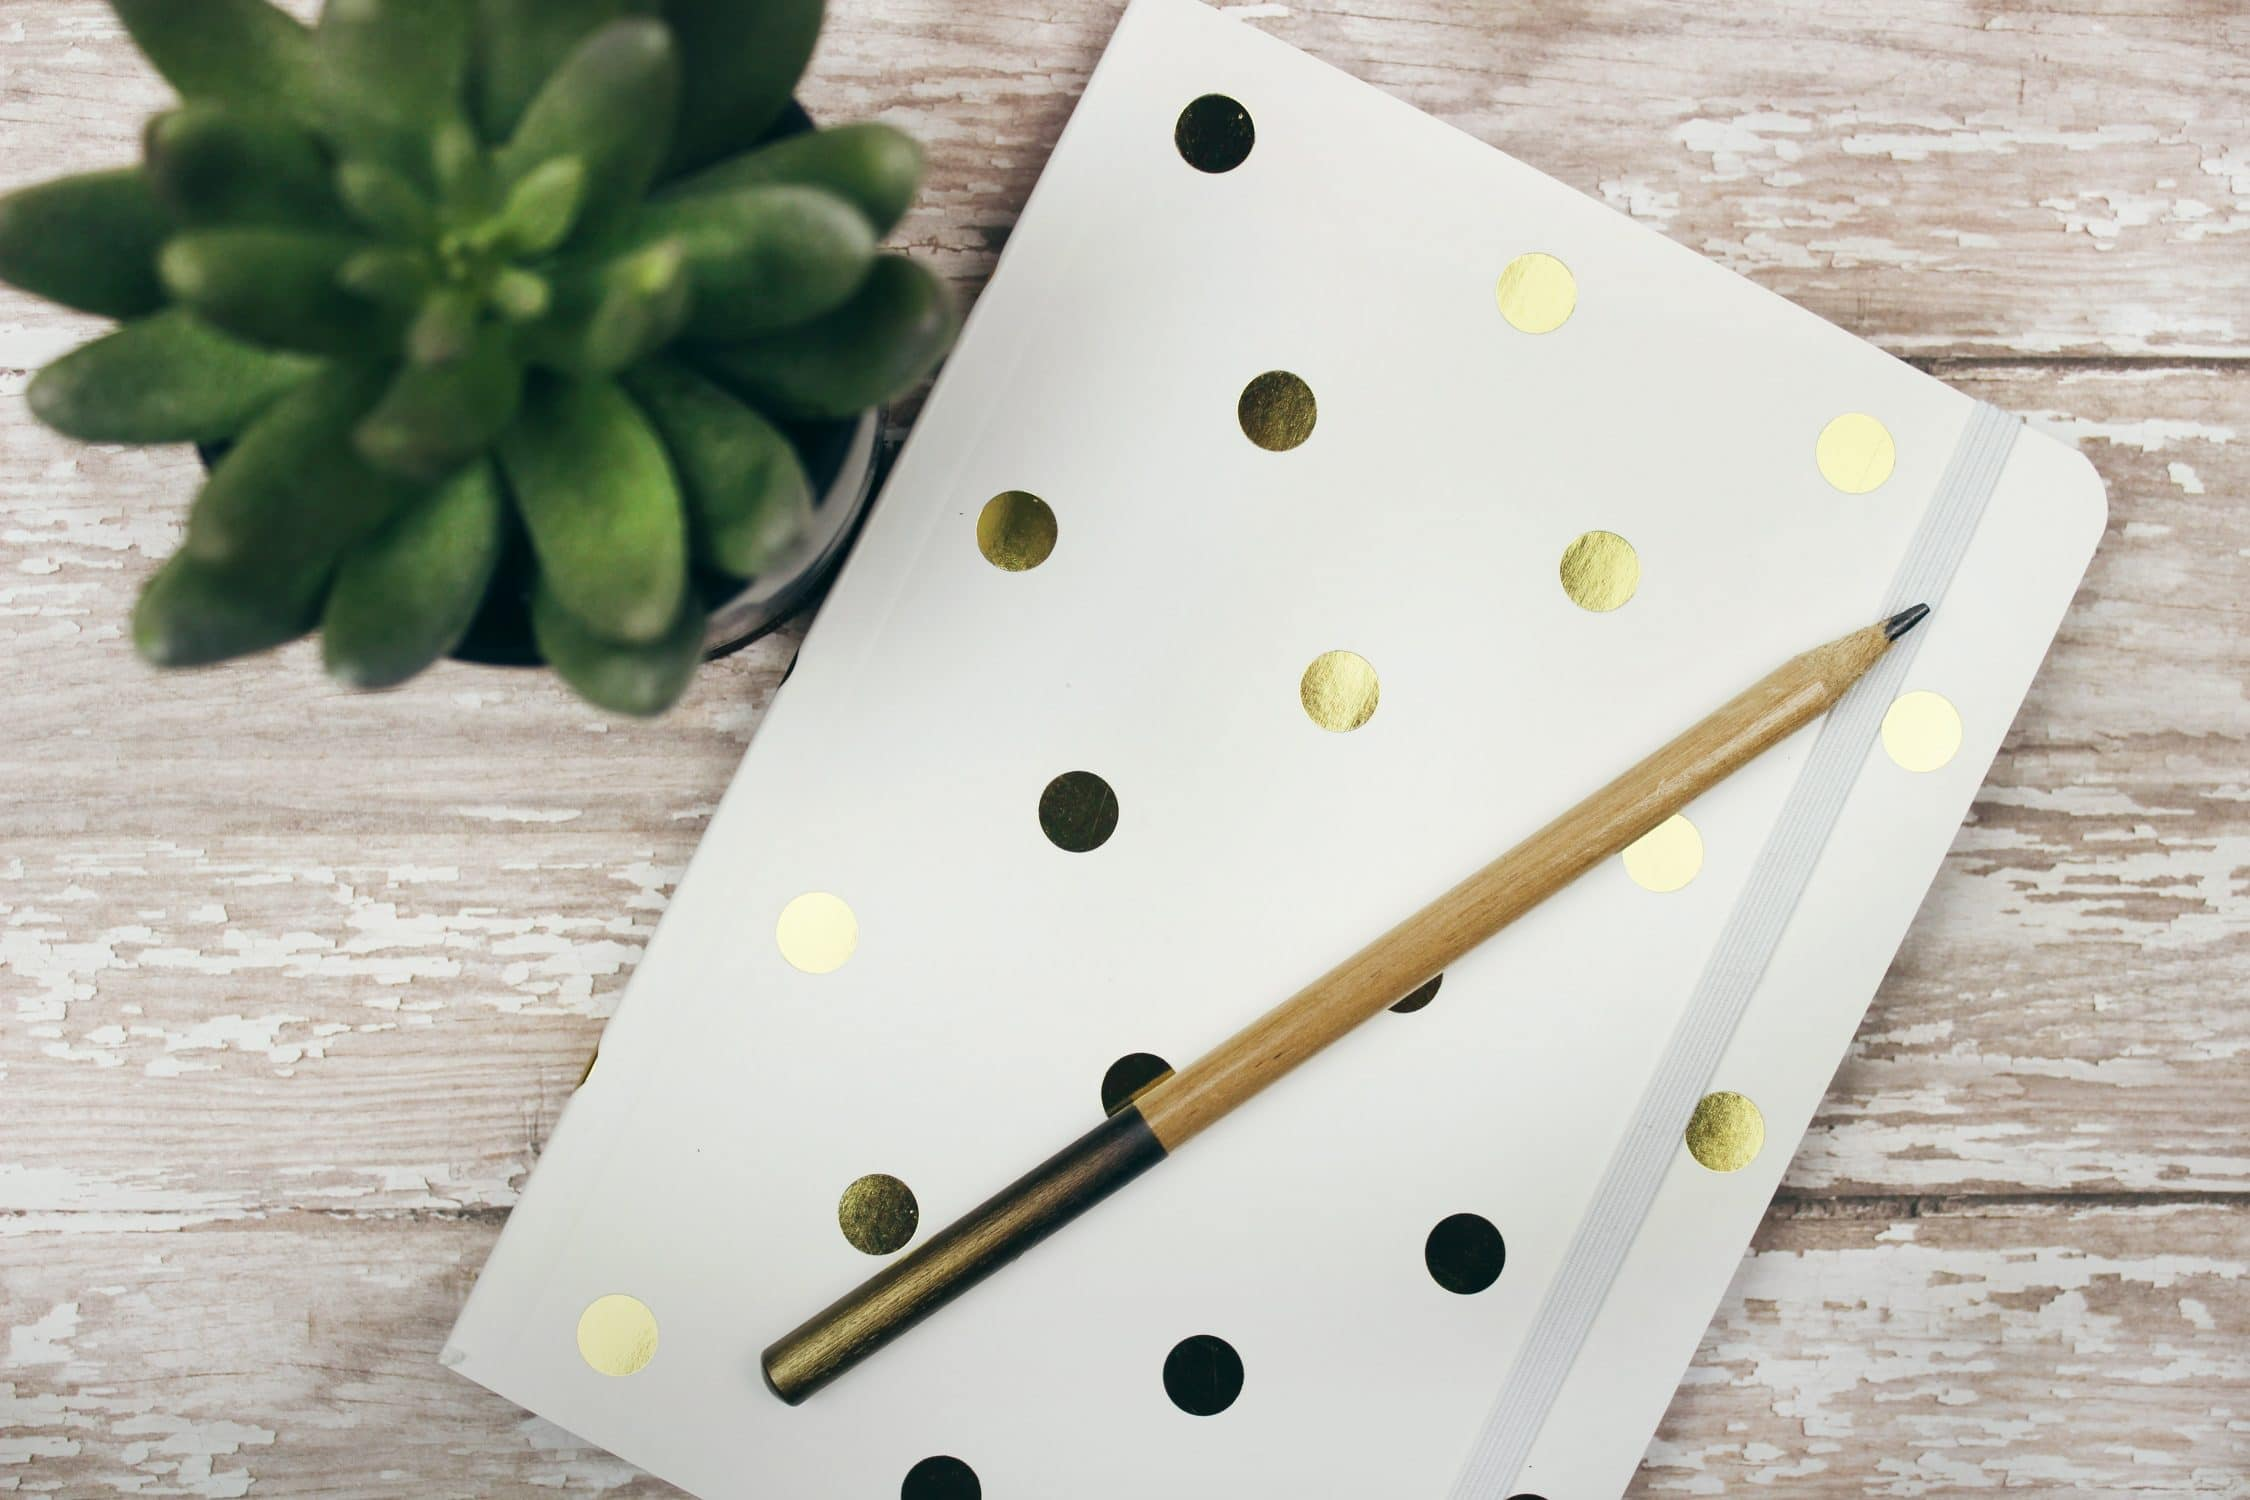 White and Gold poka-dot journal with pencil on top